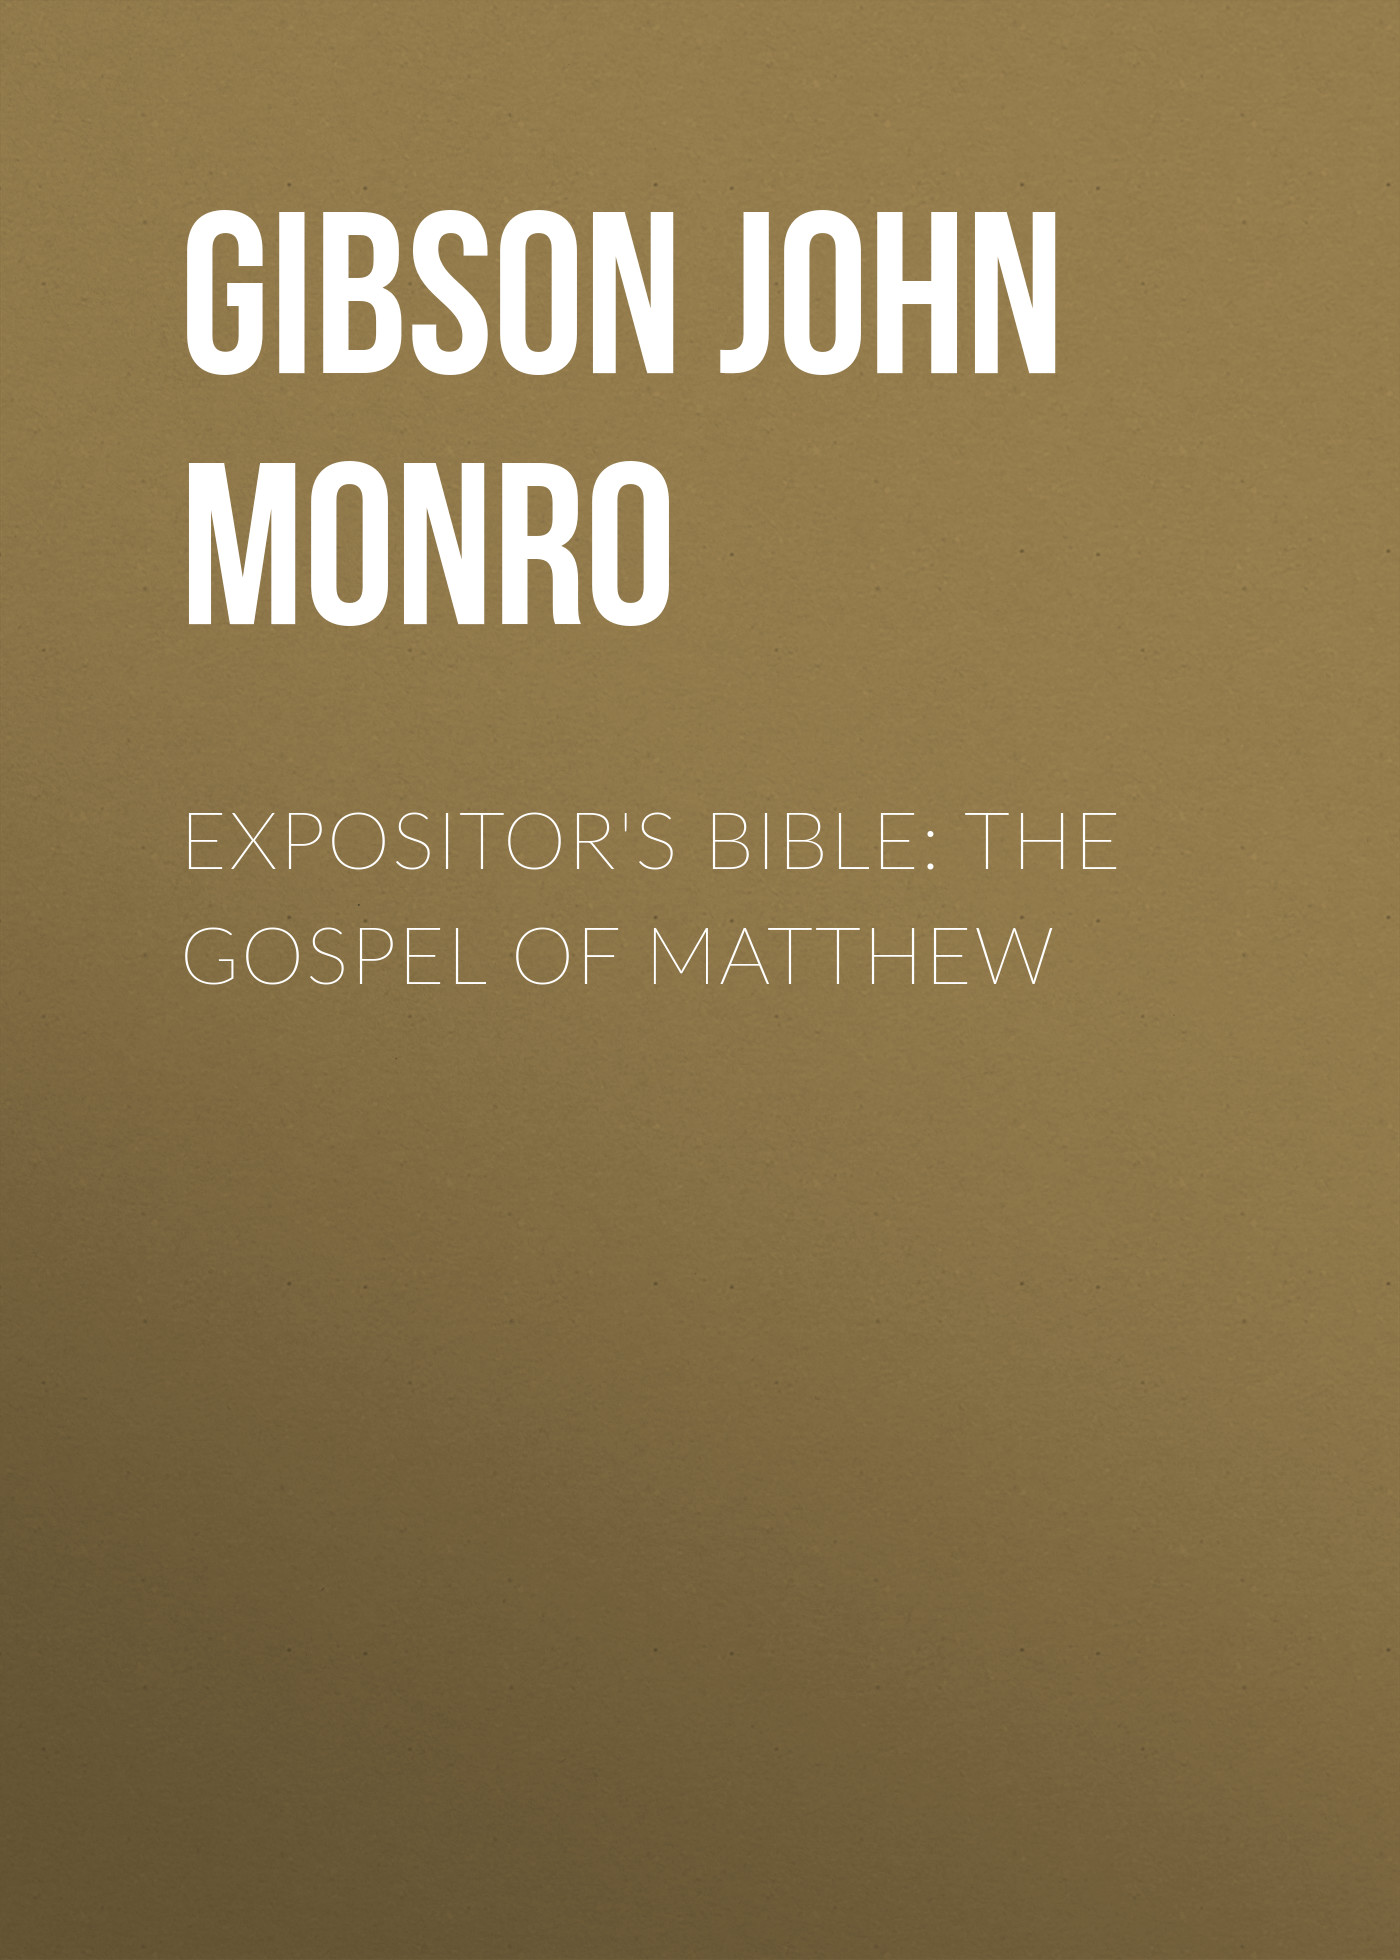 Gibson John Monro Expositor's Bible: The Gospel of Matthew various gospel of john